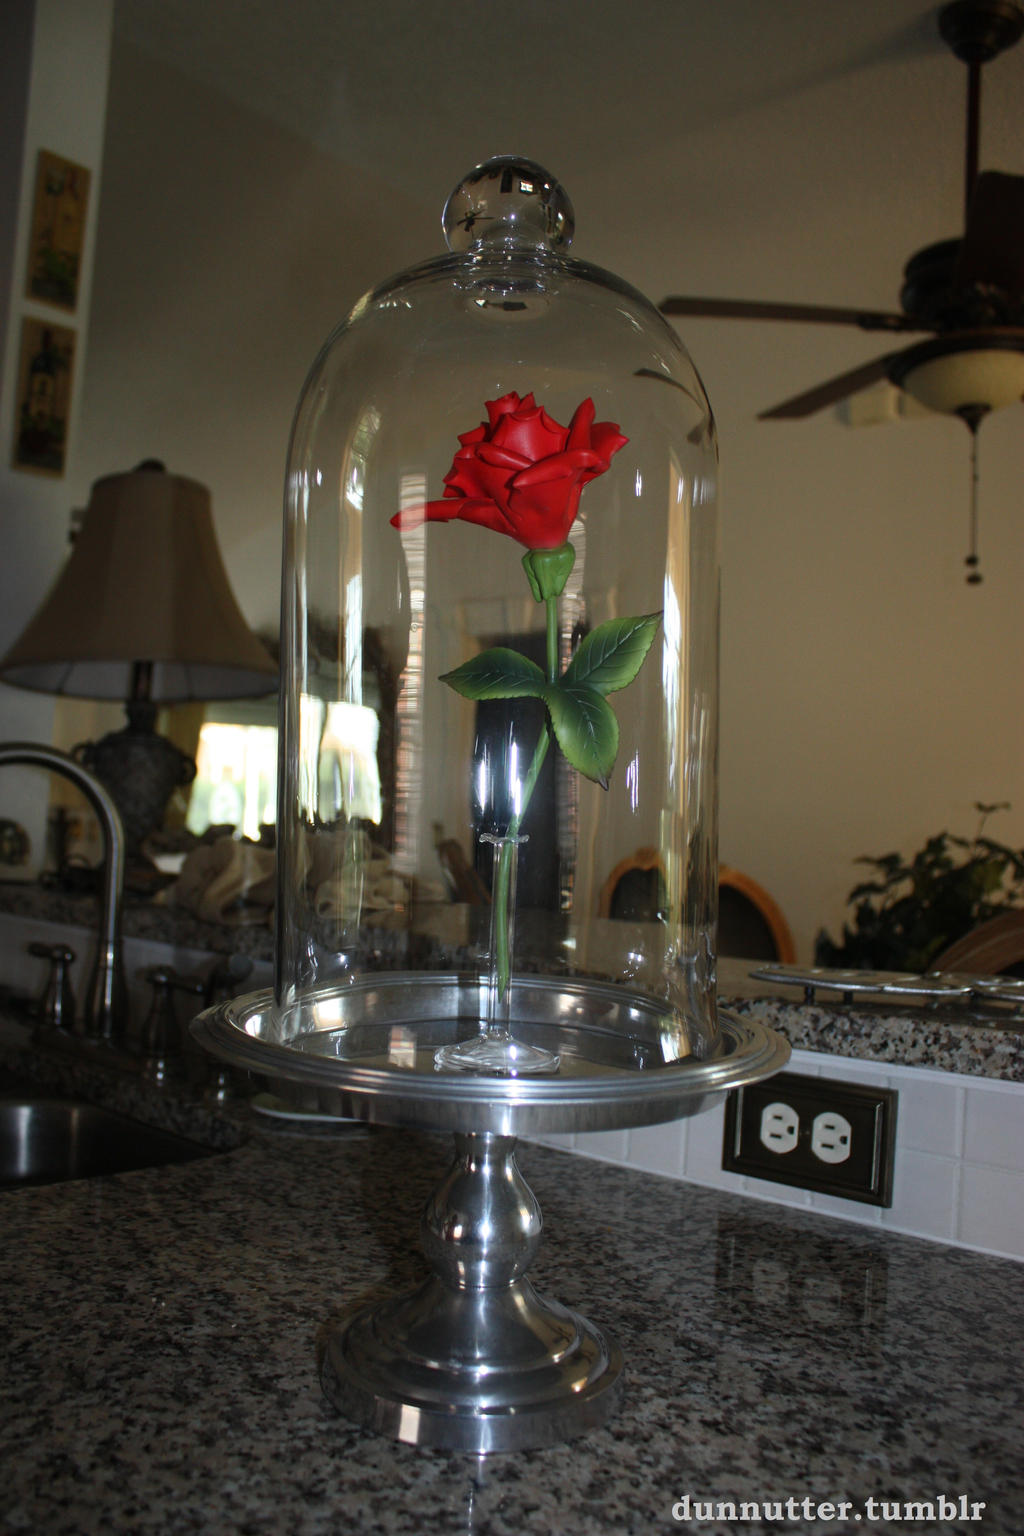 The enchanted rose by charlielou on deviantart